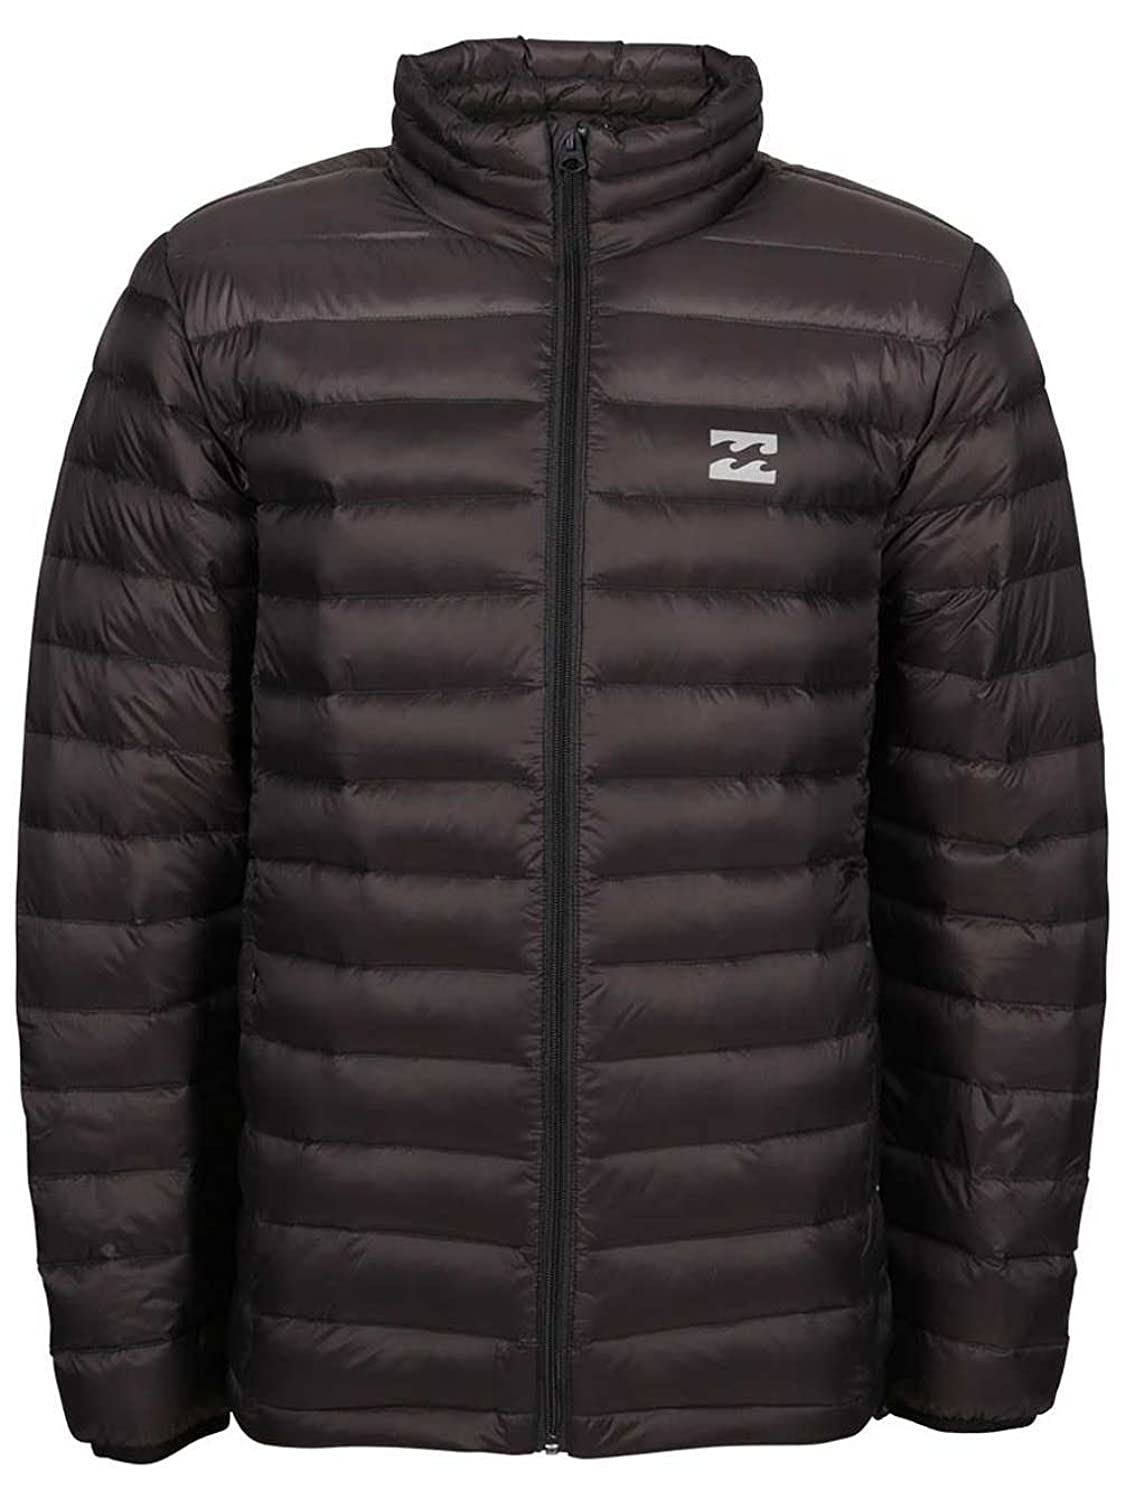 Herren Jacke Billabong Salt Creek Down Jacket